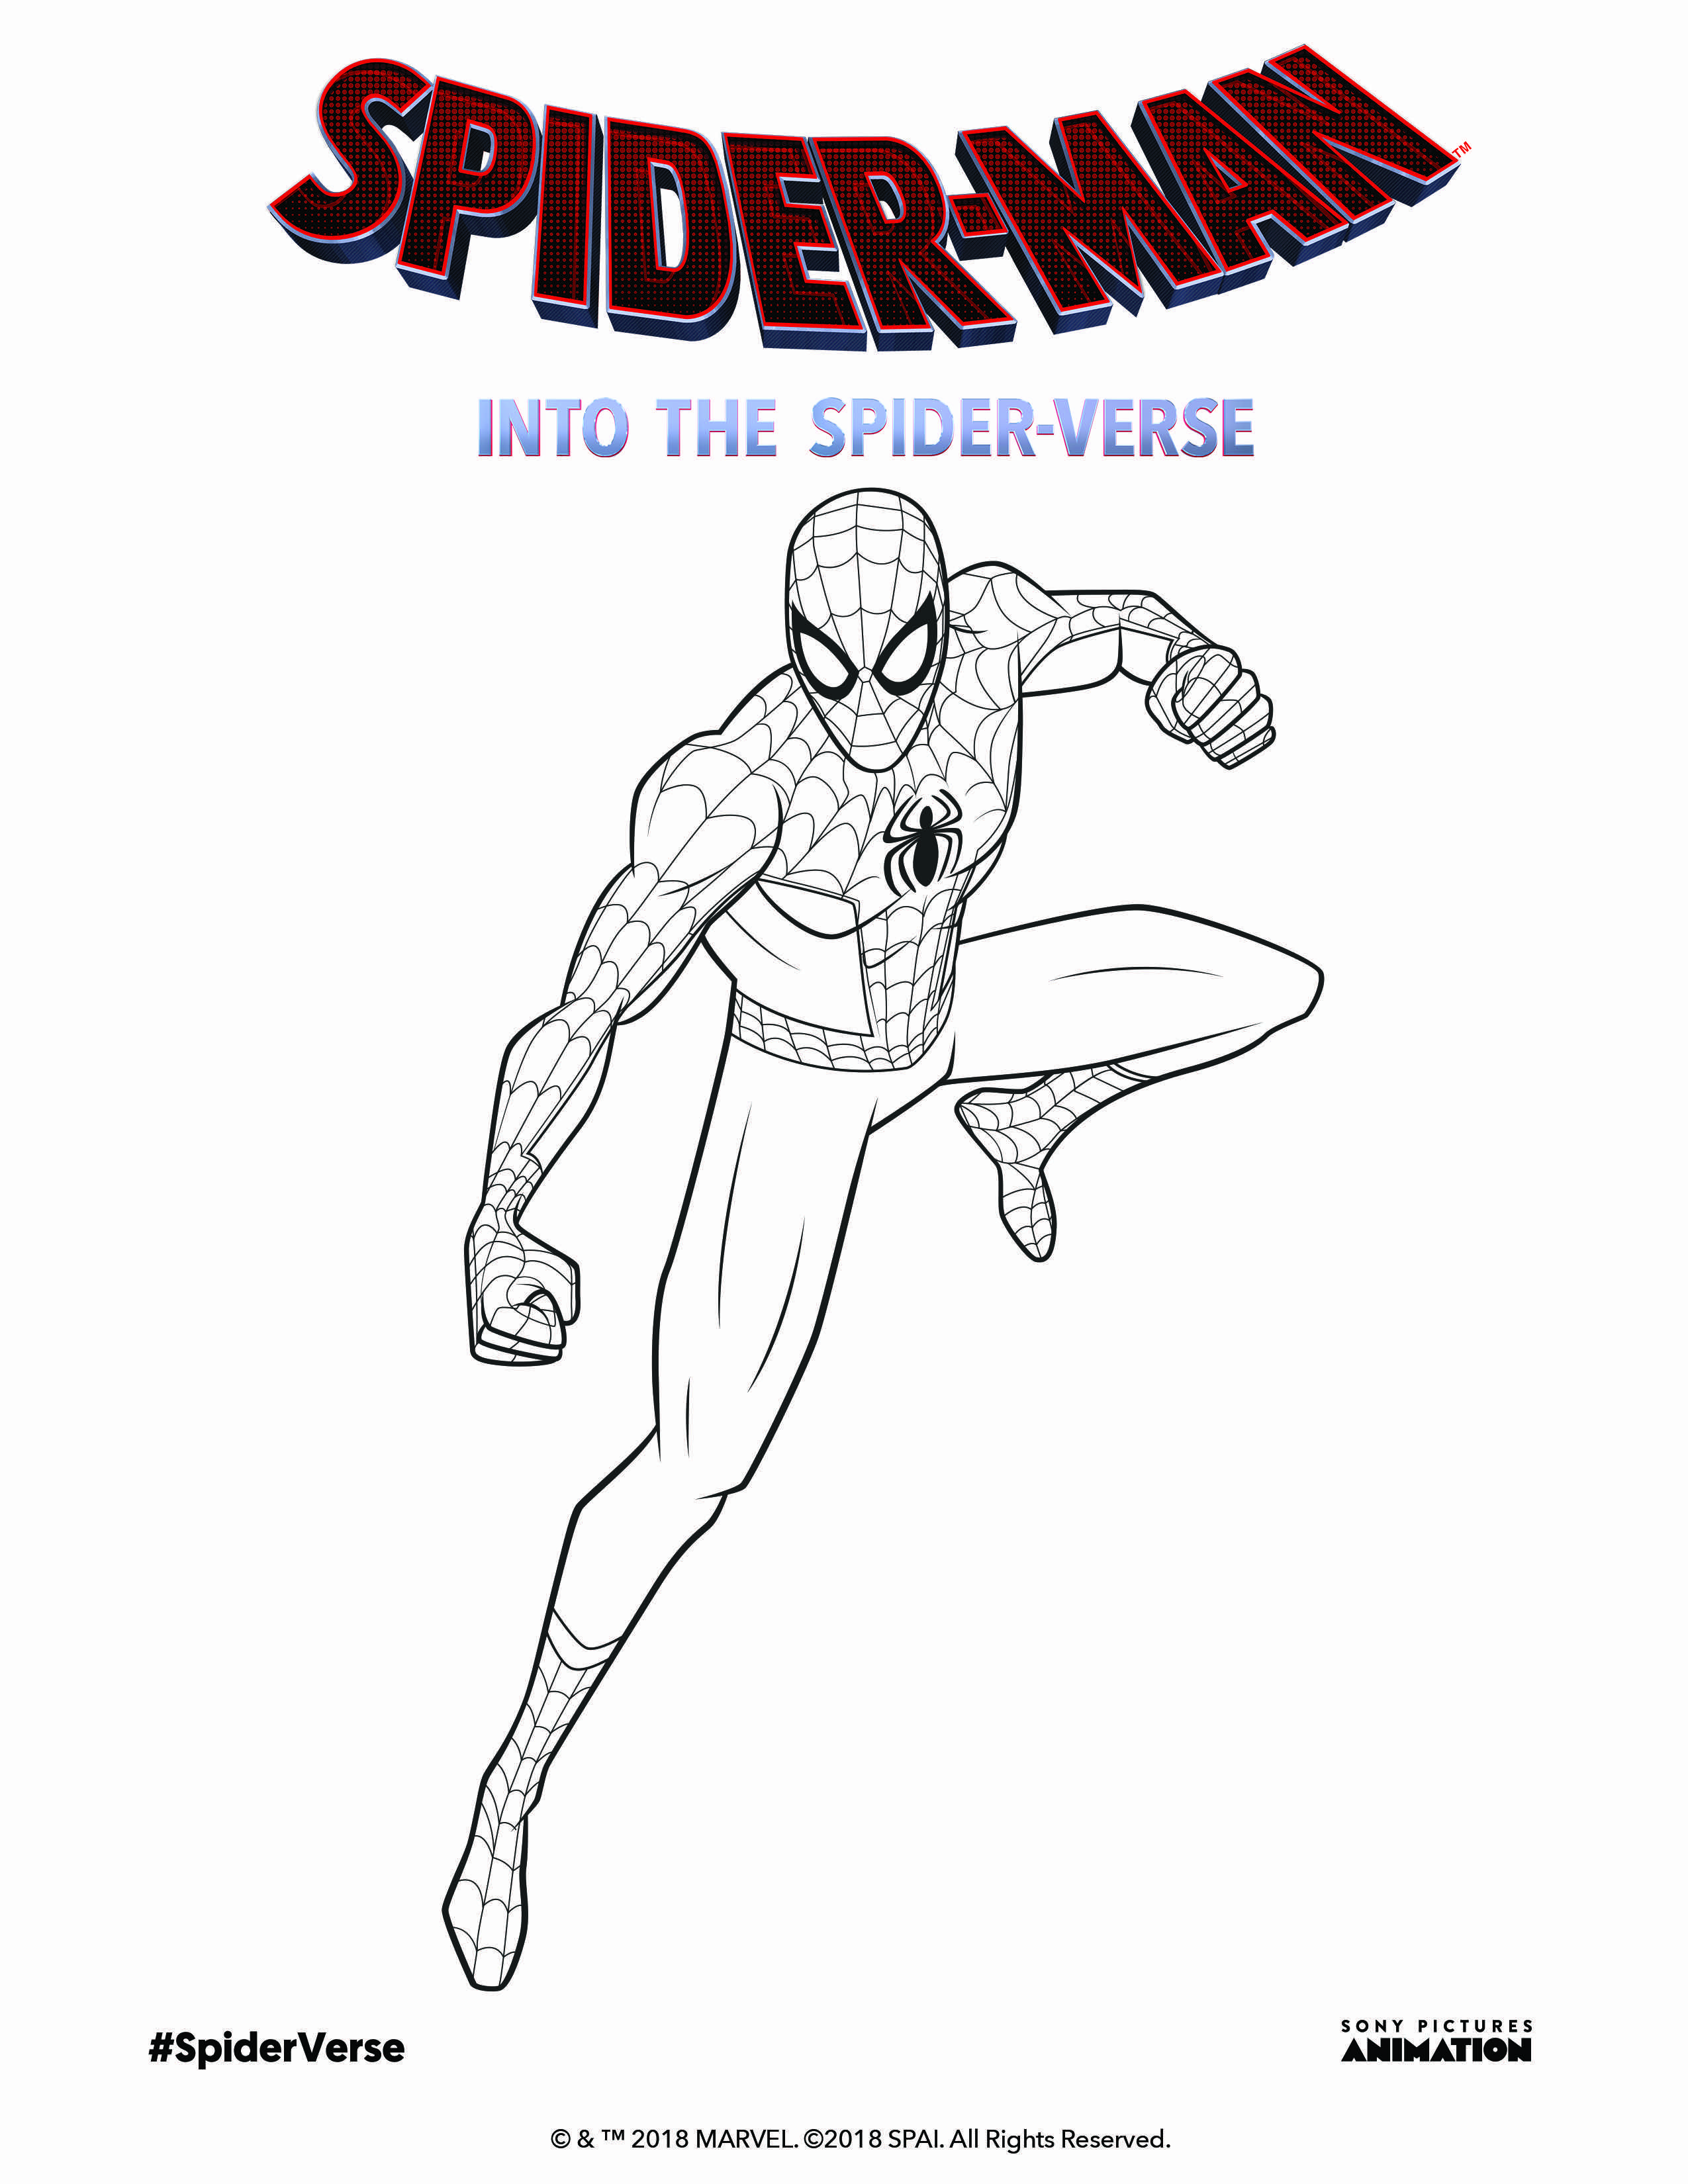 Enjoy Coloring Peterparker From Spiderman Into The Spiderverse In Theaters 12 14 18 Spider Verse Coloring Pages Cartoon Coloring Pages